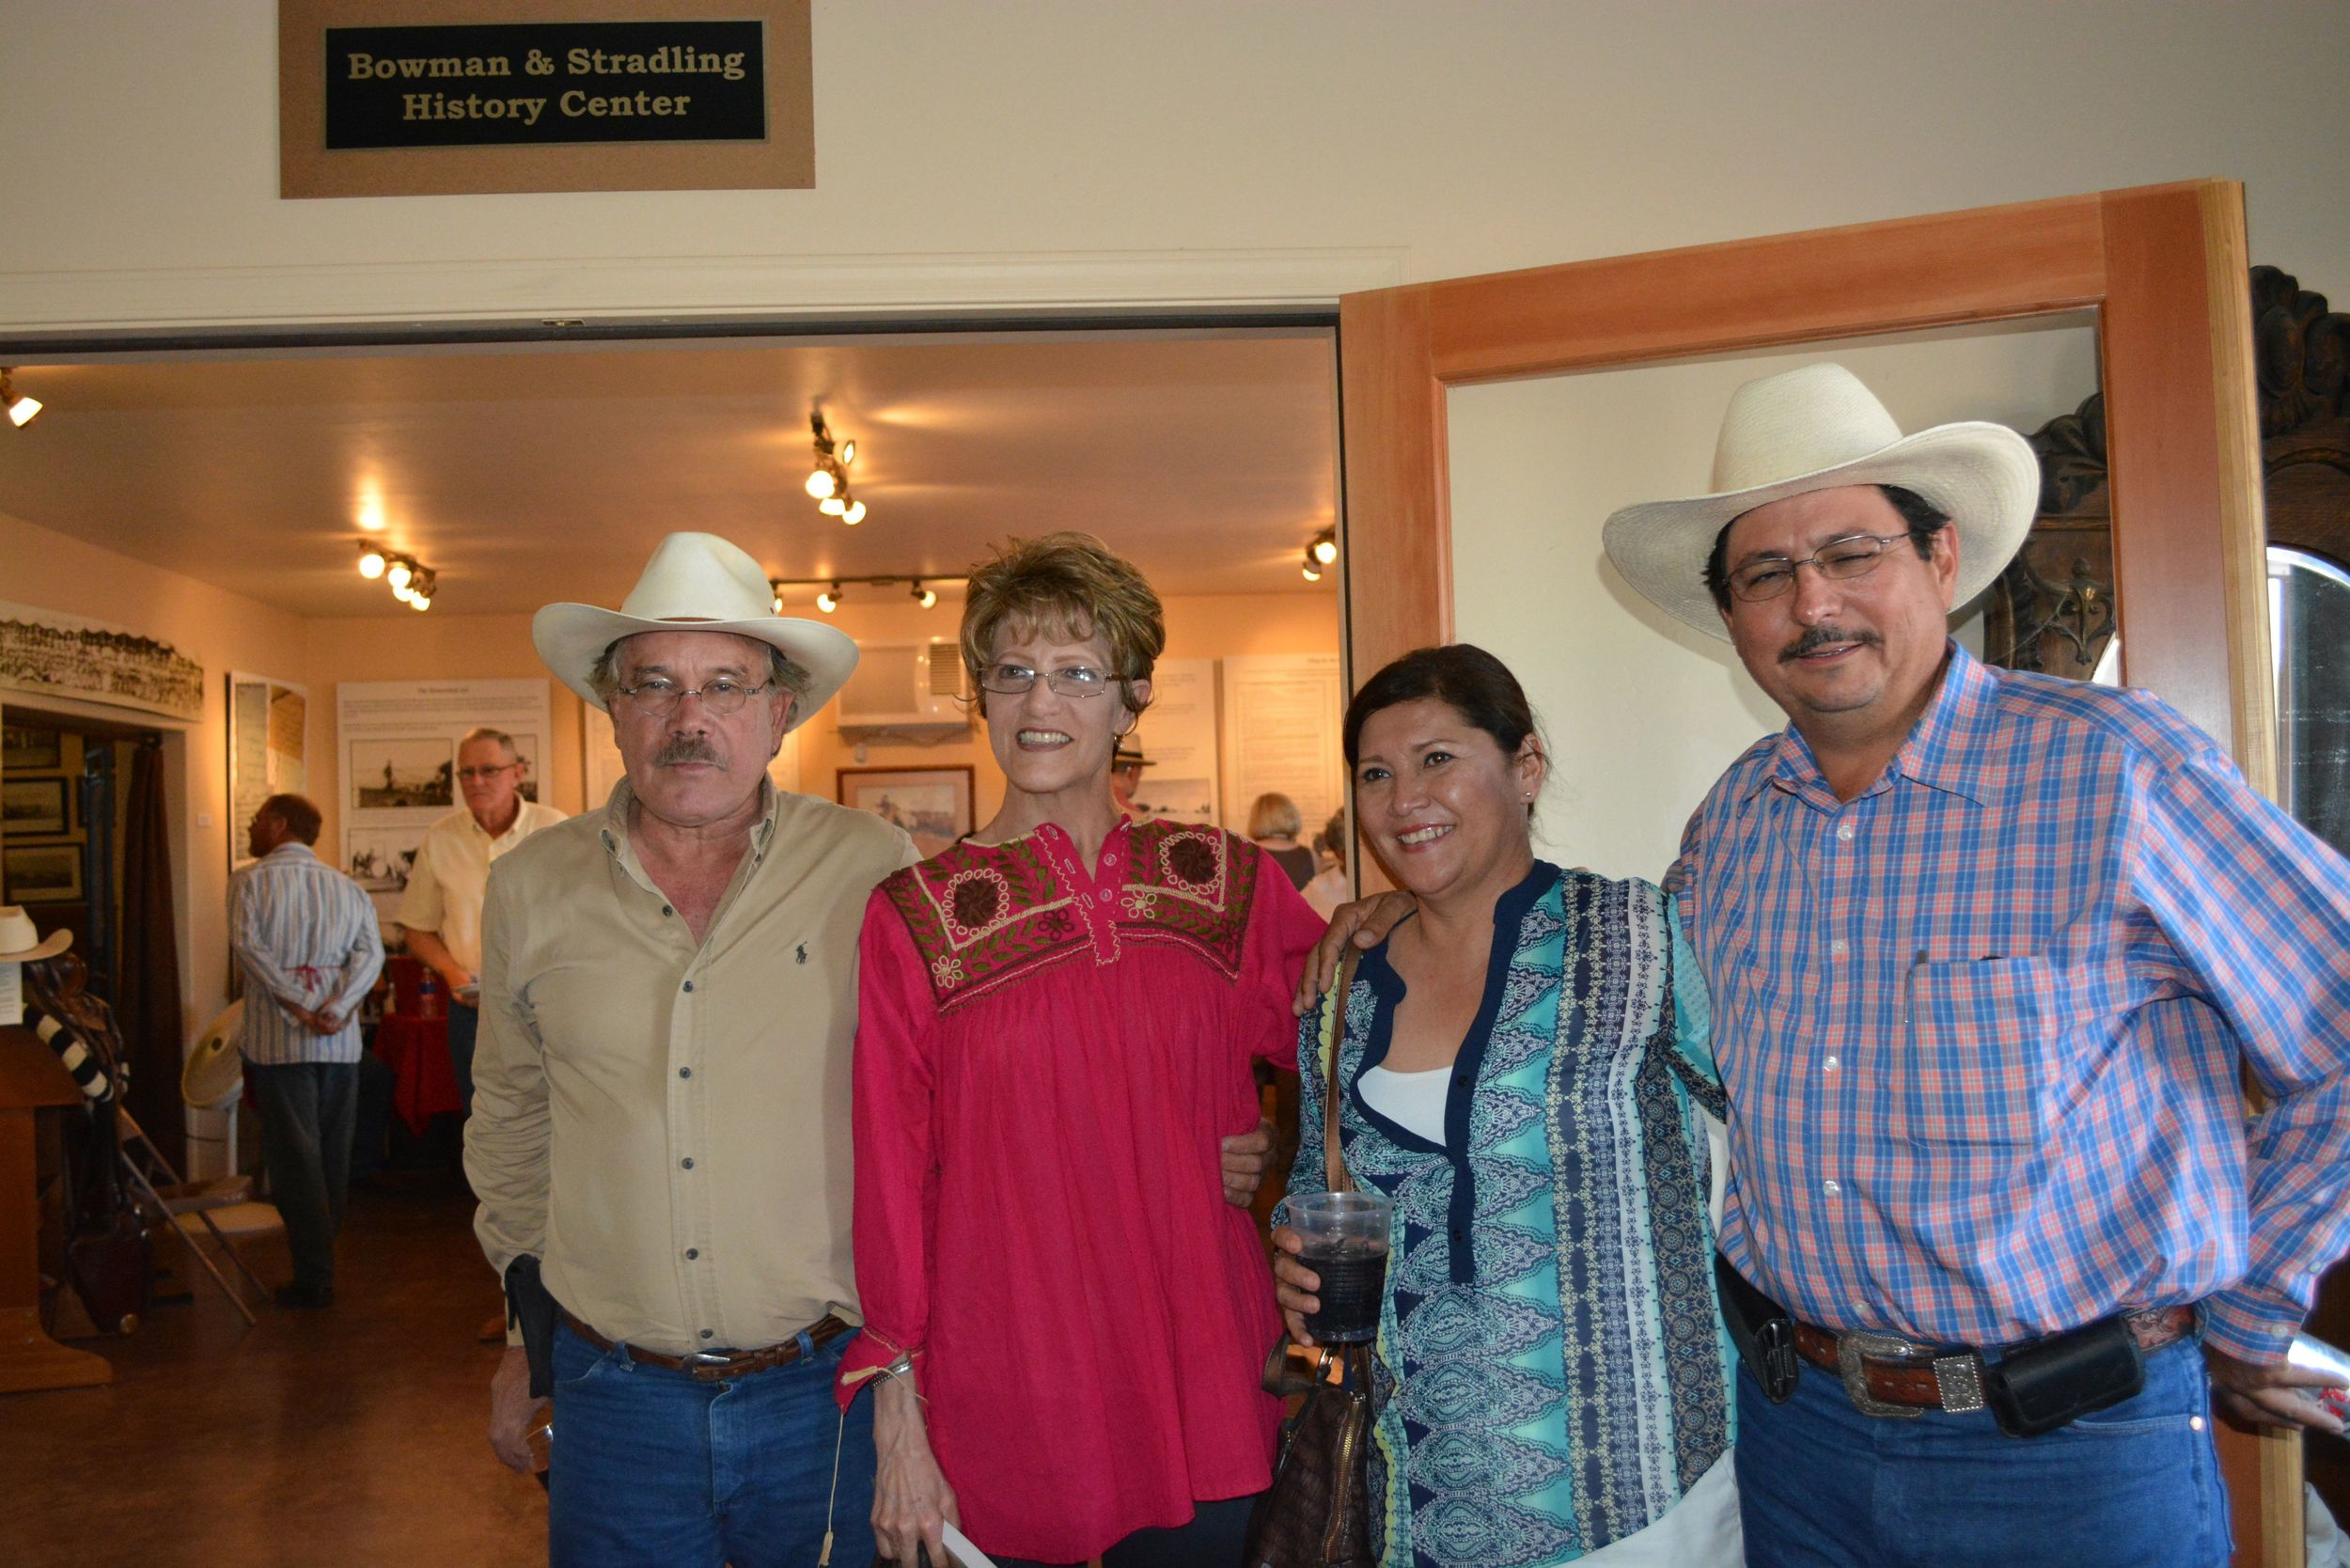 From right:  José Luis Salgado, Julia Félix de Salgado, Cecilia Sánchez de Ramonet, and Ricardo Ramonet Rascón.  All are members of Por Los Caminos de Kino riders from Hermosillo, Sonora.  José Luis is the leader/organizer of the group.